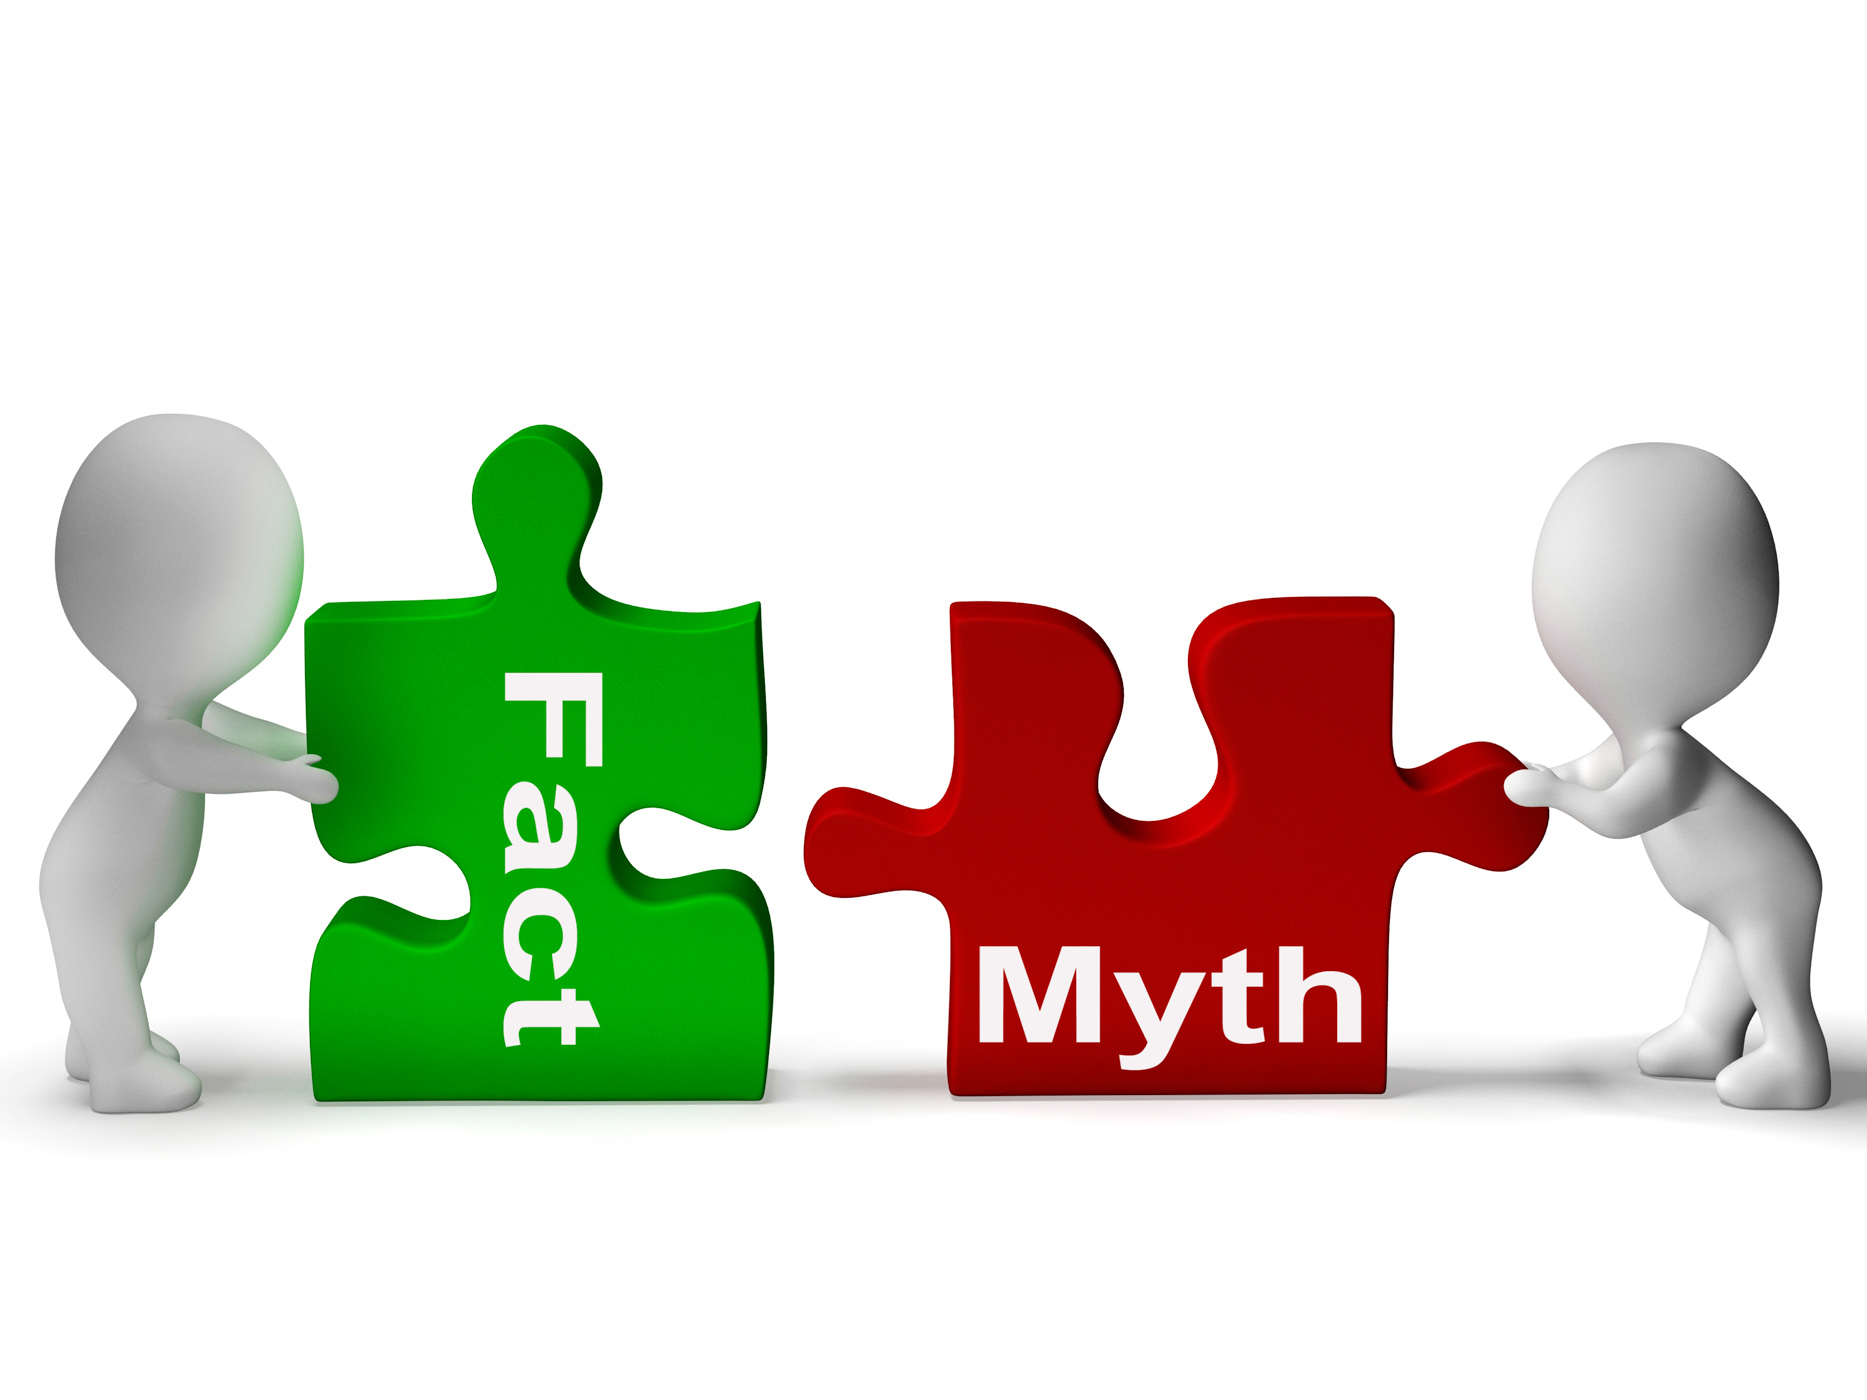 Fact Myth Puzzle Shows Facts Or Mythology, 3d, Character, Fact, Facts, HQ Photo